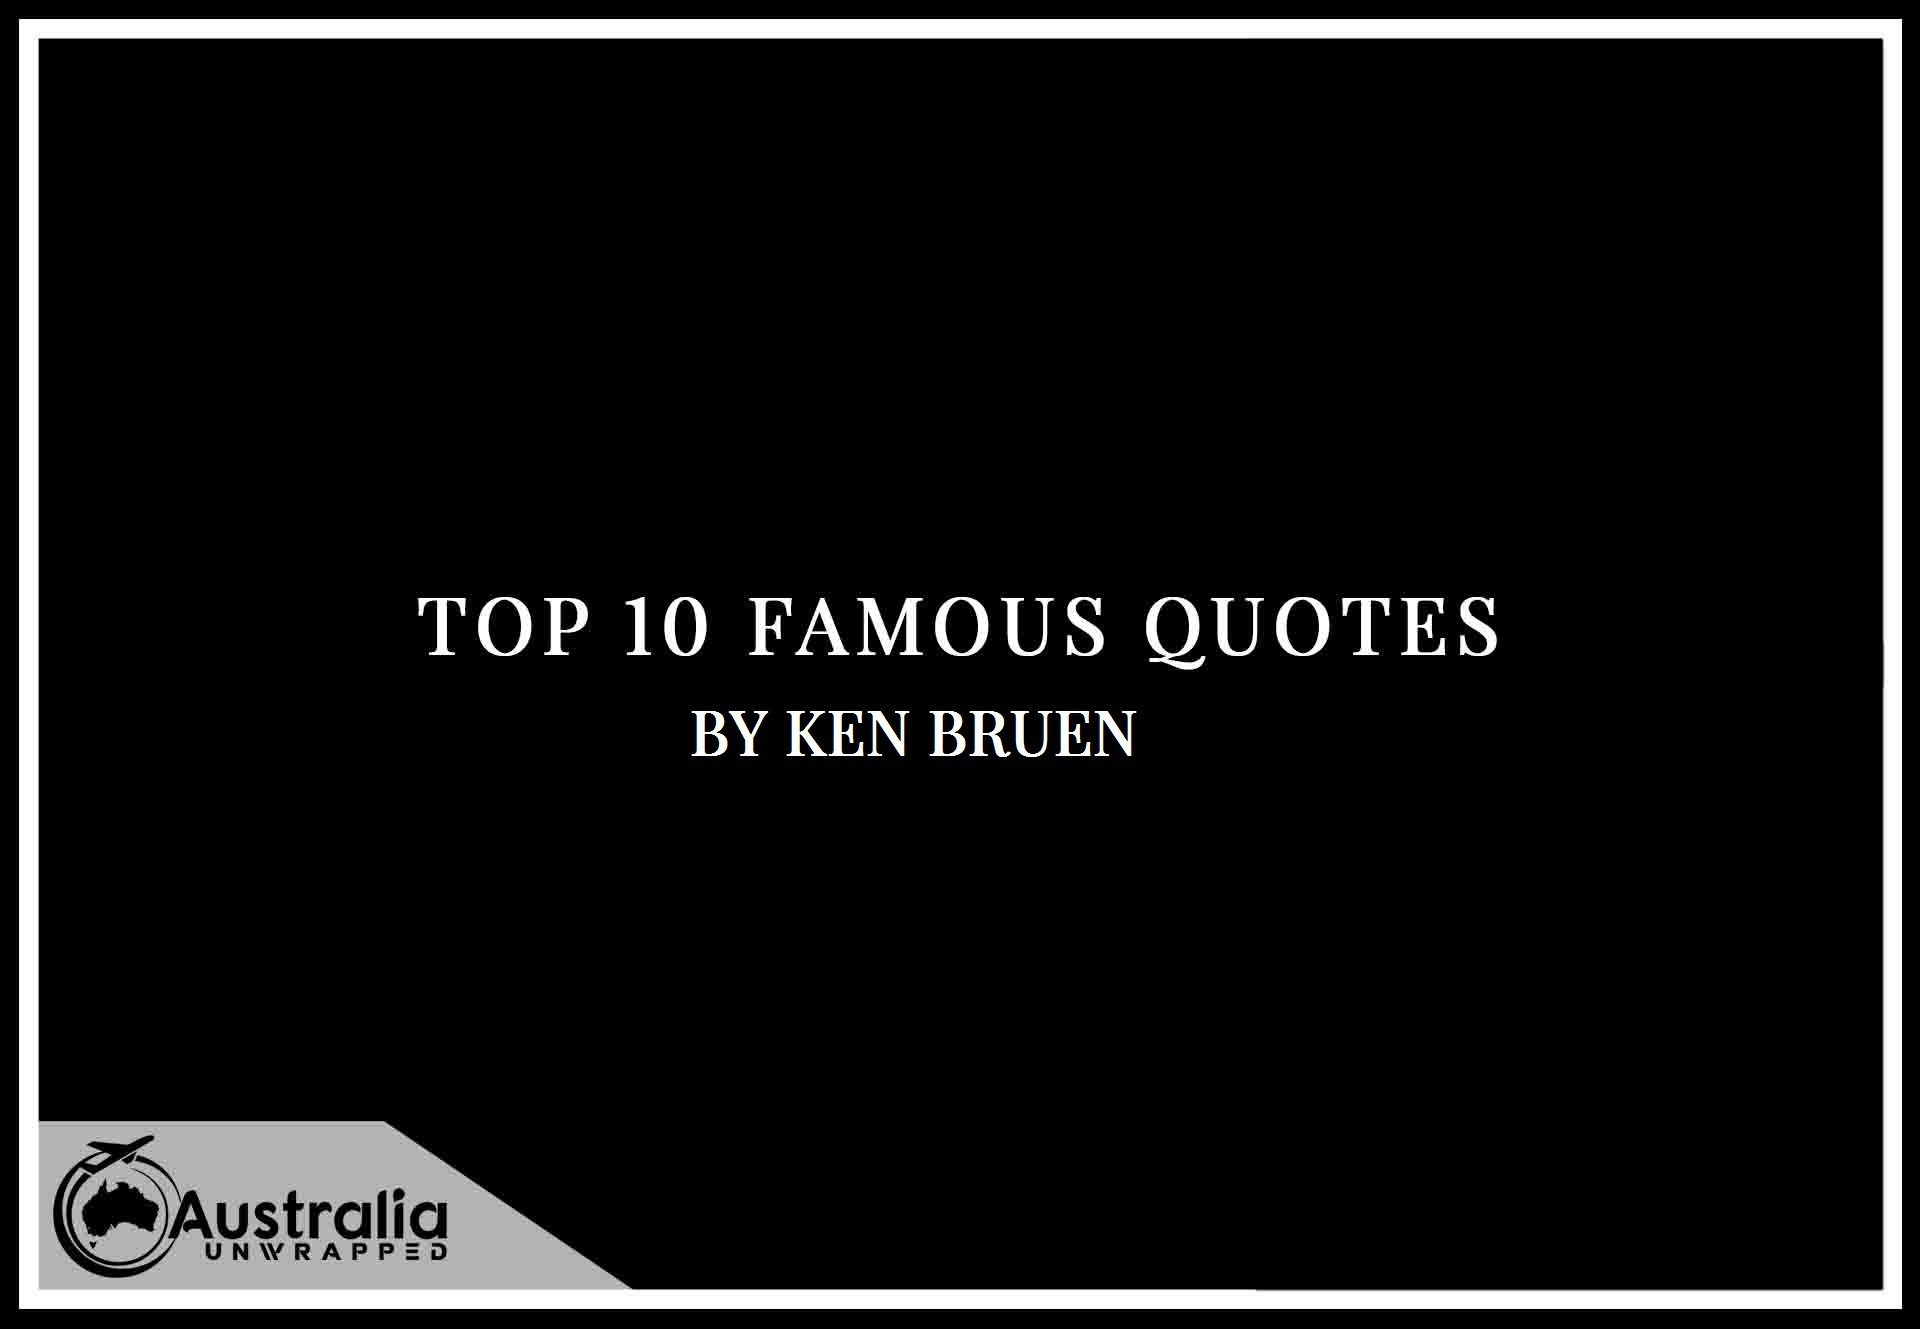 Ken Bruen's Top 10 Popular and Famous Quotes